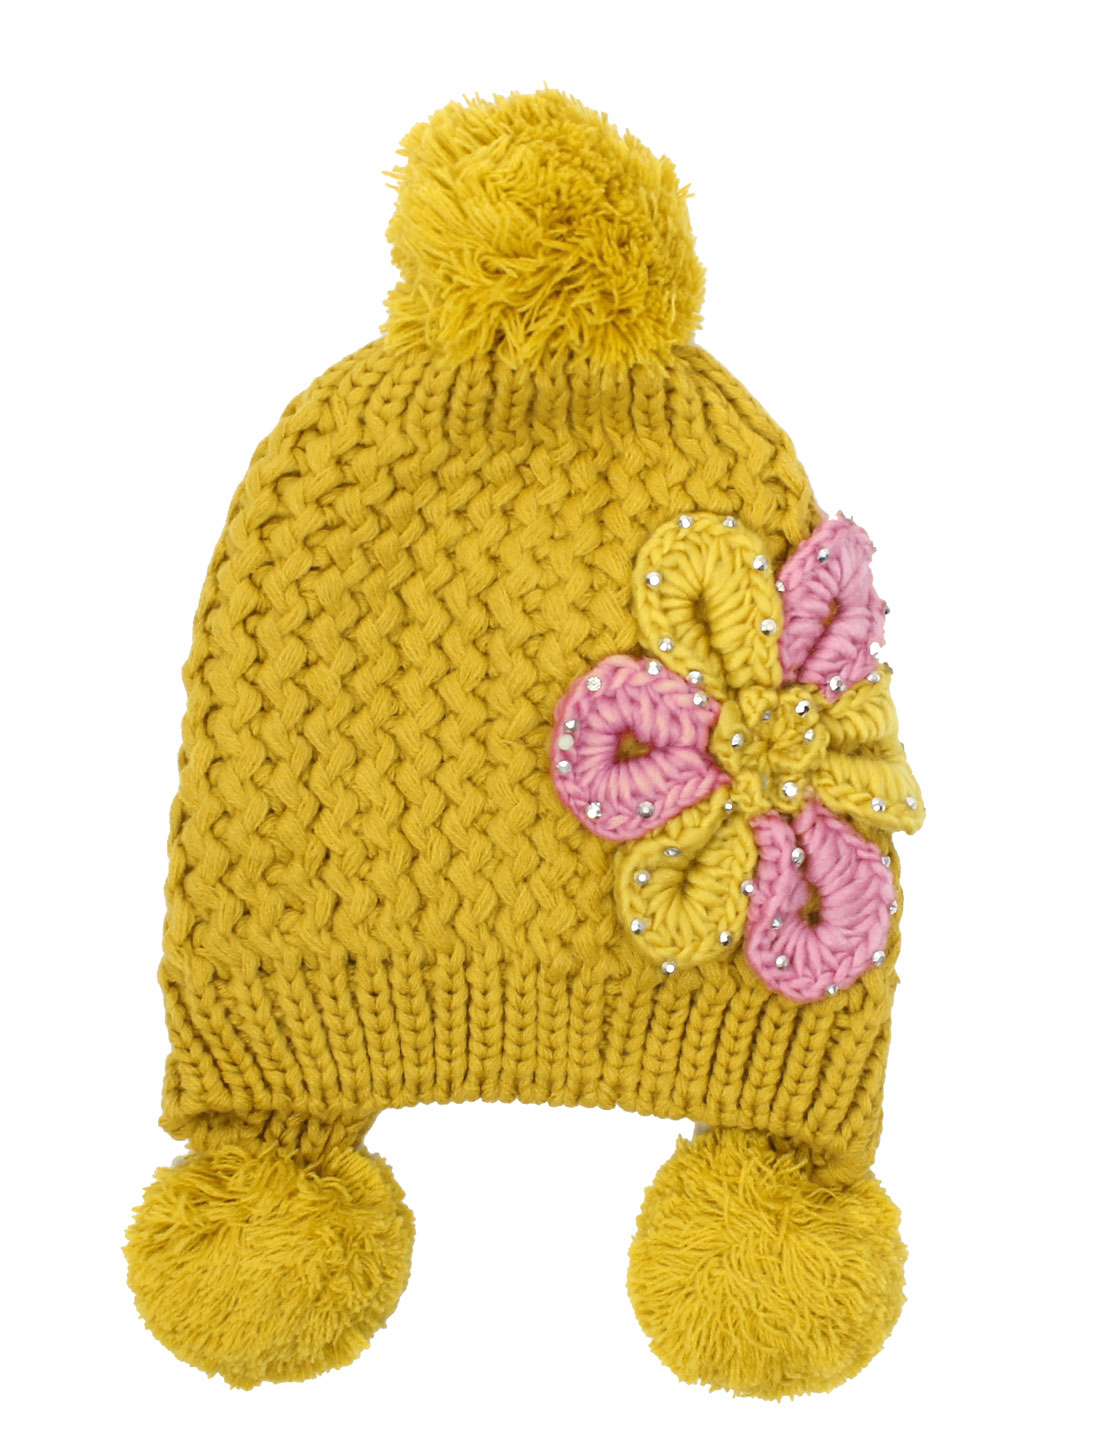 Woman NEW Studded Flower Embellished Yellow Winter Cable-Knitted Hat